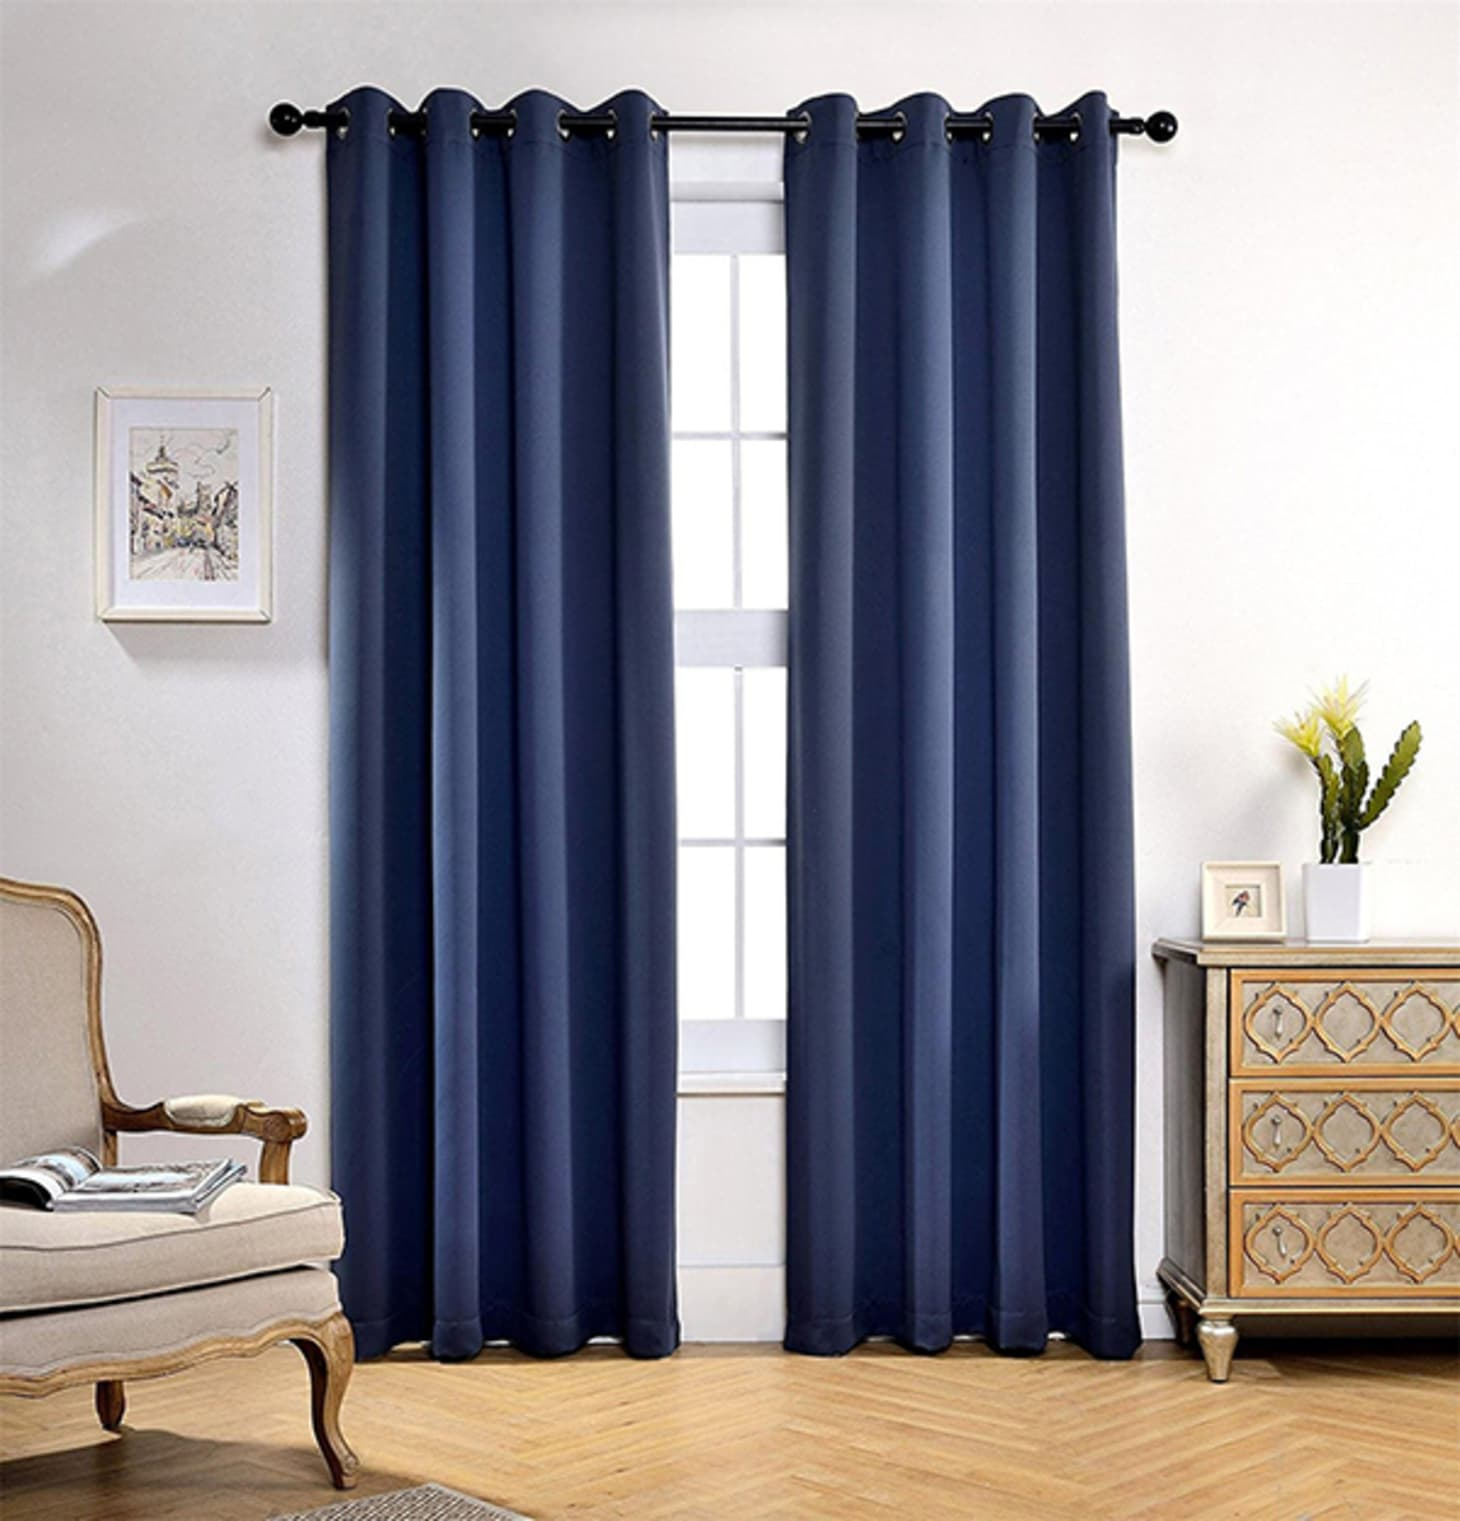 Best Insulated Blackout Curtains | Apartment Therapy Within Moroccan Style Thermal Insulated Blackout Curtain Panel Pairs (View 16 of 20)